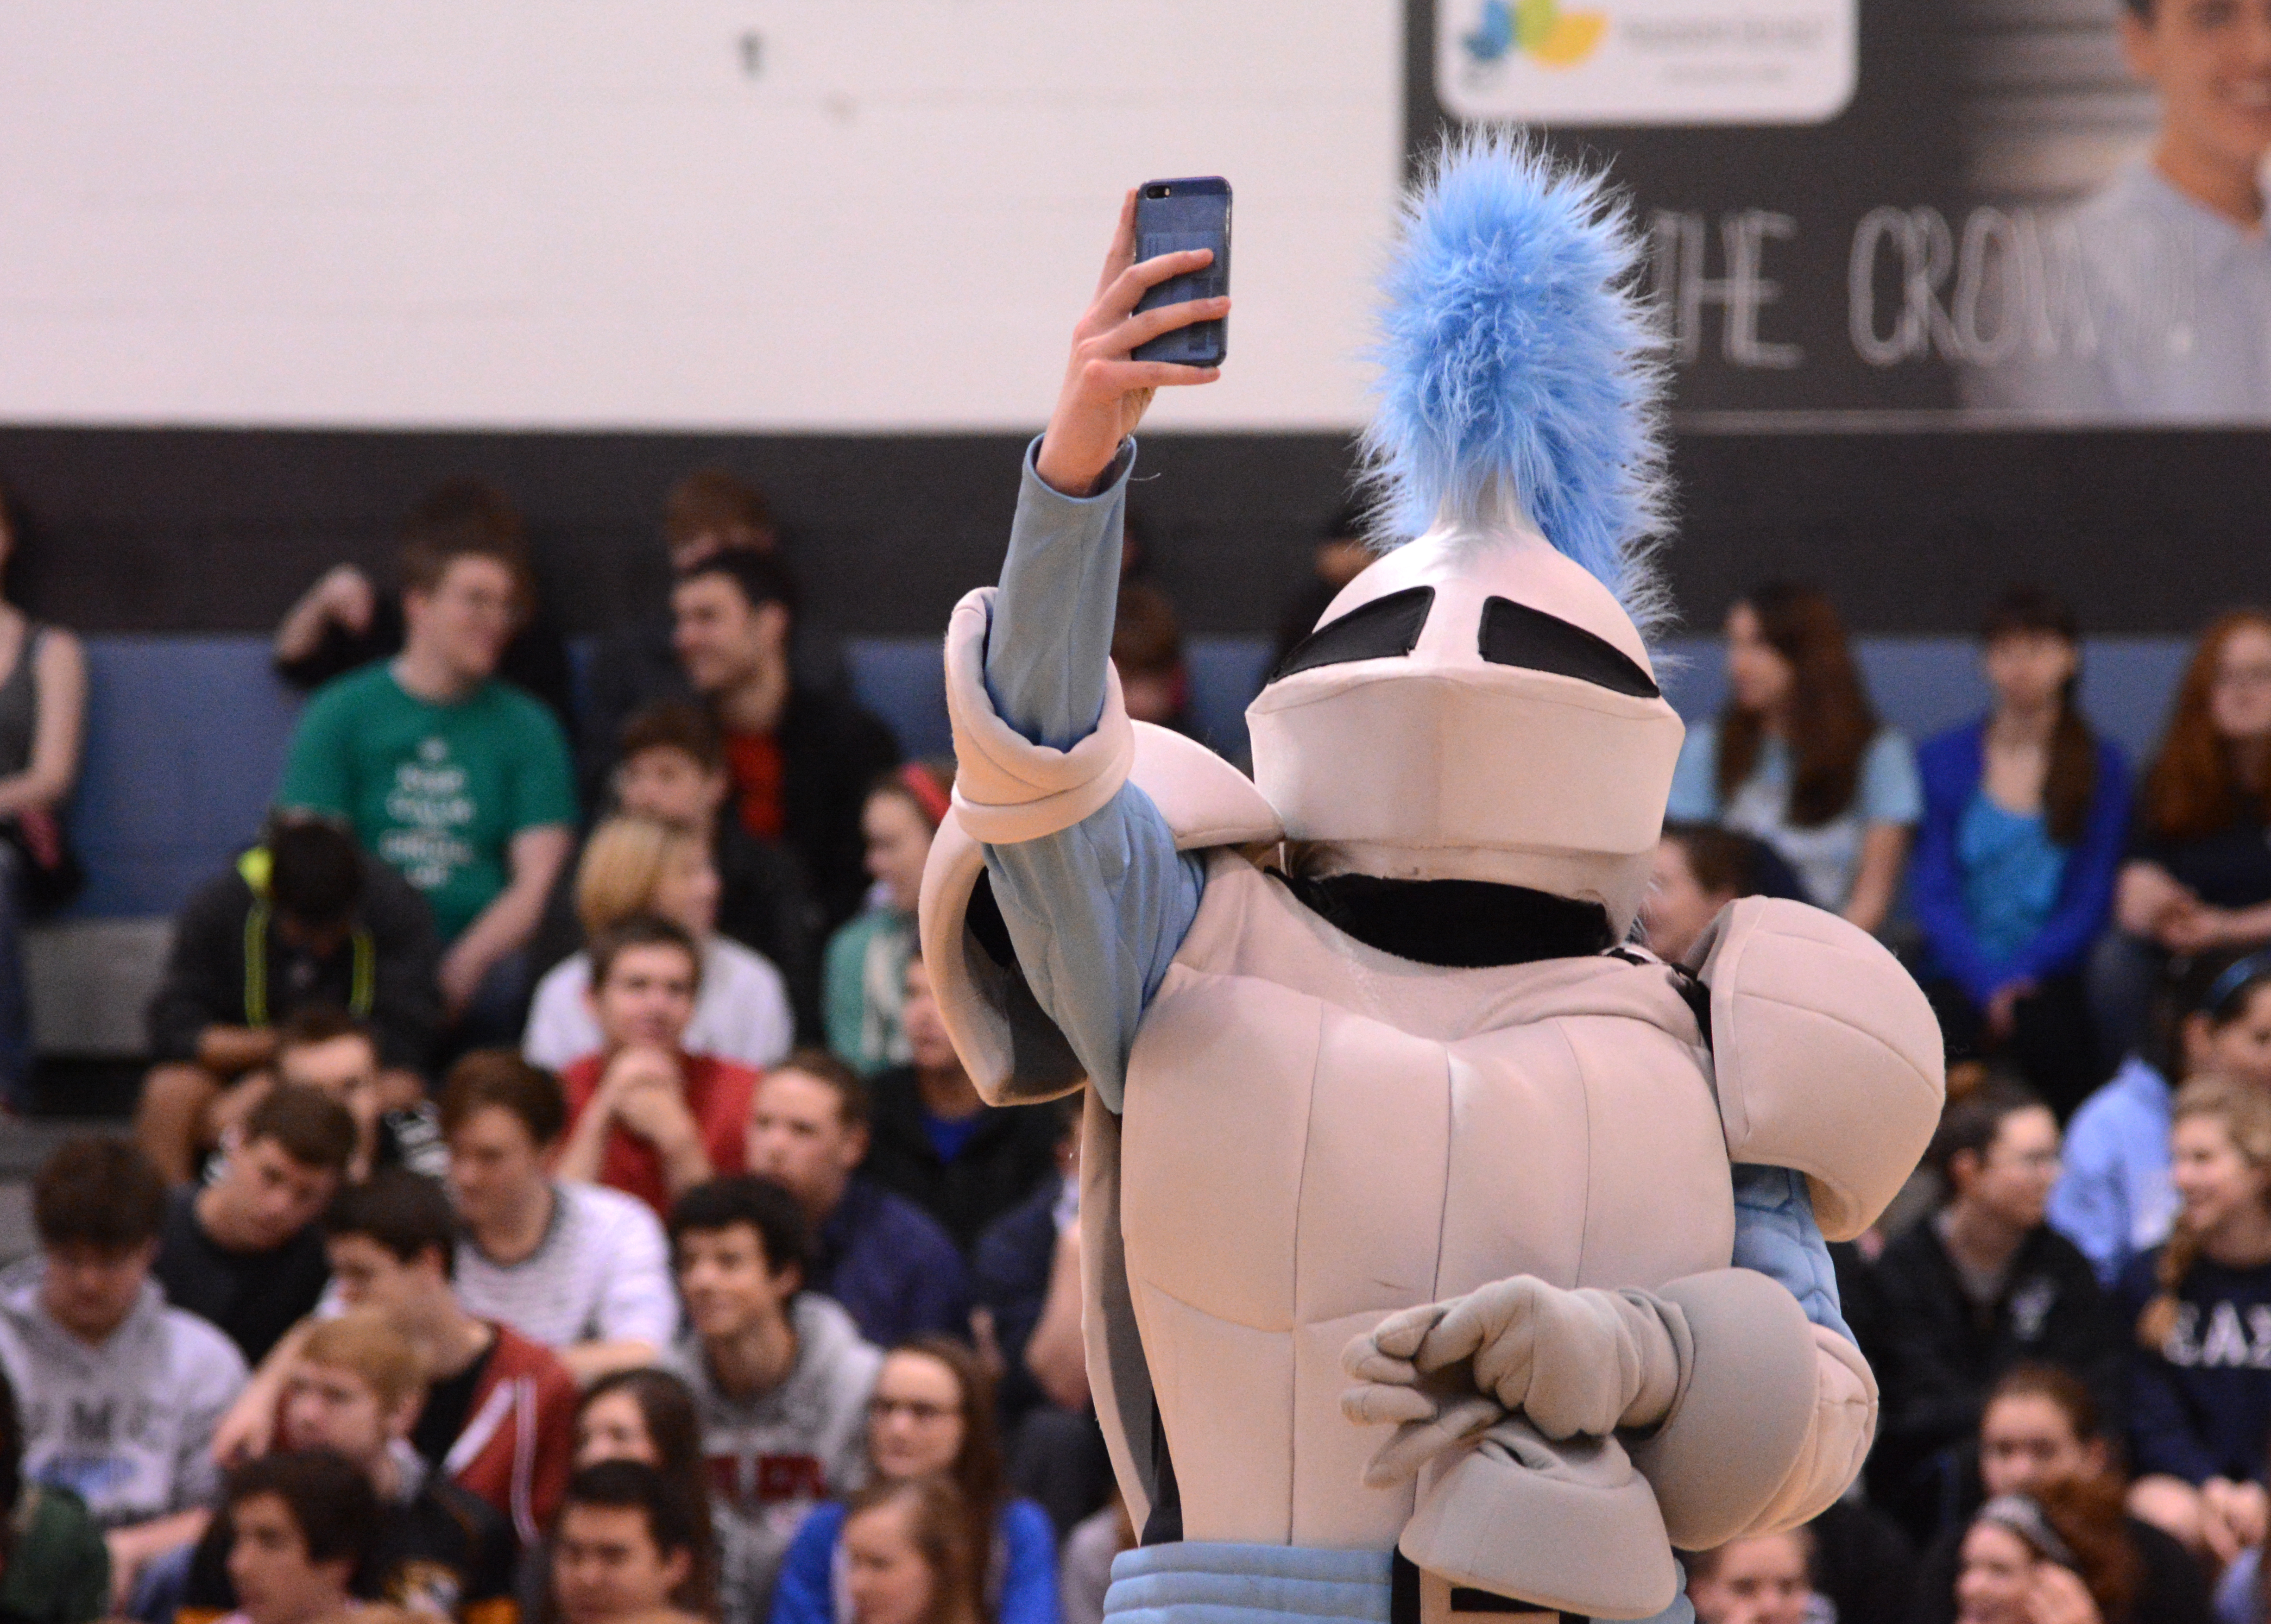 Podcast: Lancers' Favorite Parts of the School Year